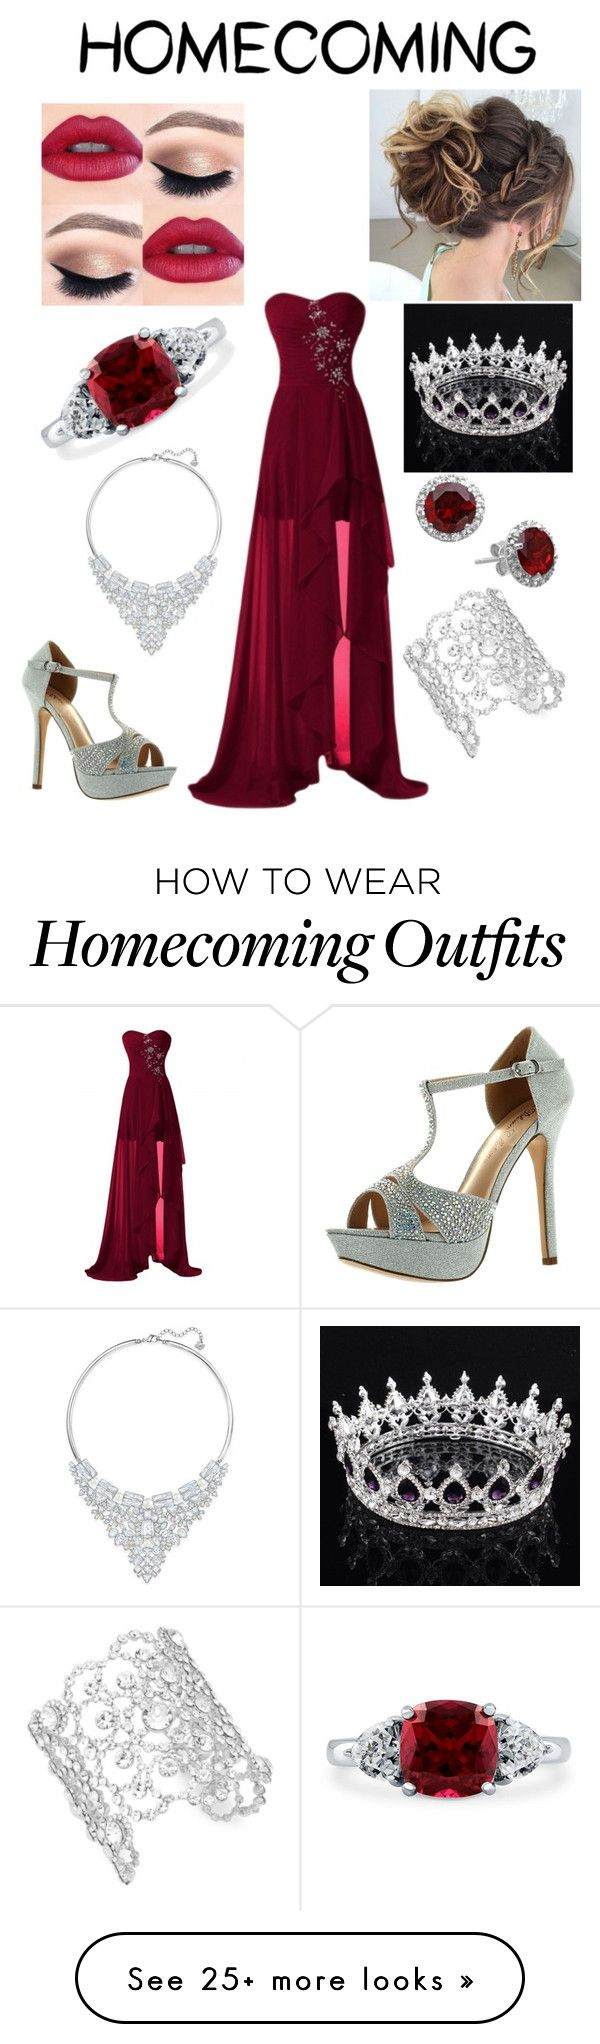 """Homecoming Queen"" by calliedc on Polyvore featuring De Blossom, Kate Spade, Swarovski and BERRICLE"